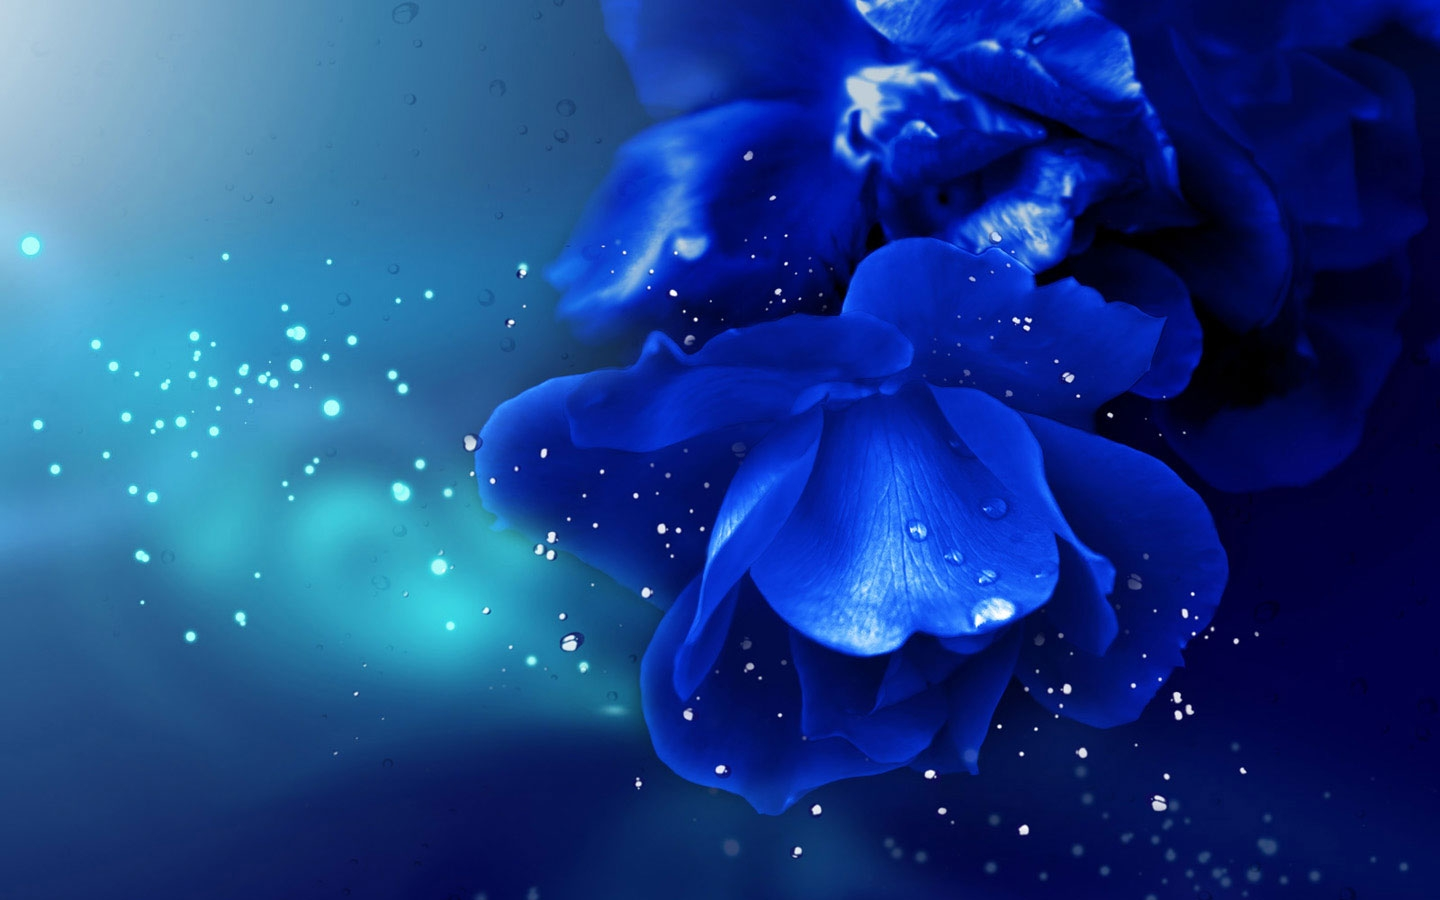 Amazing Blue Wallpaper